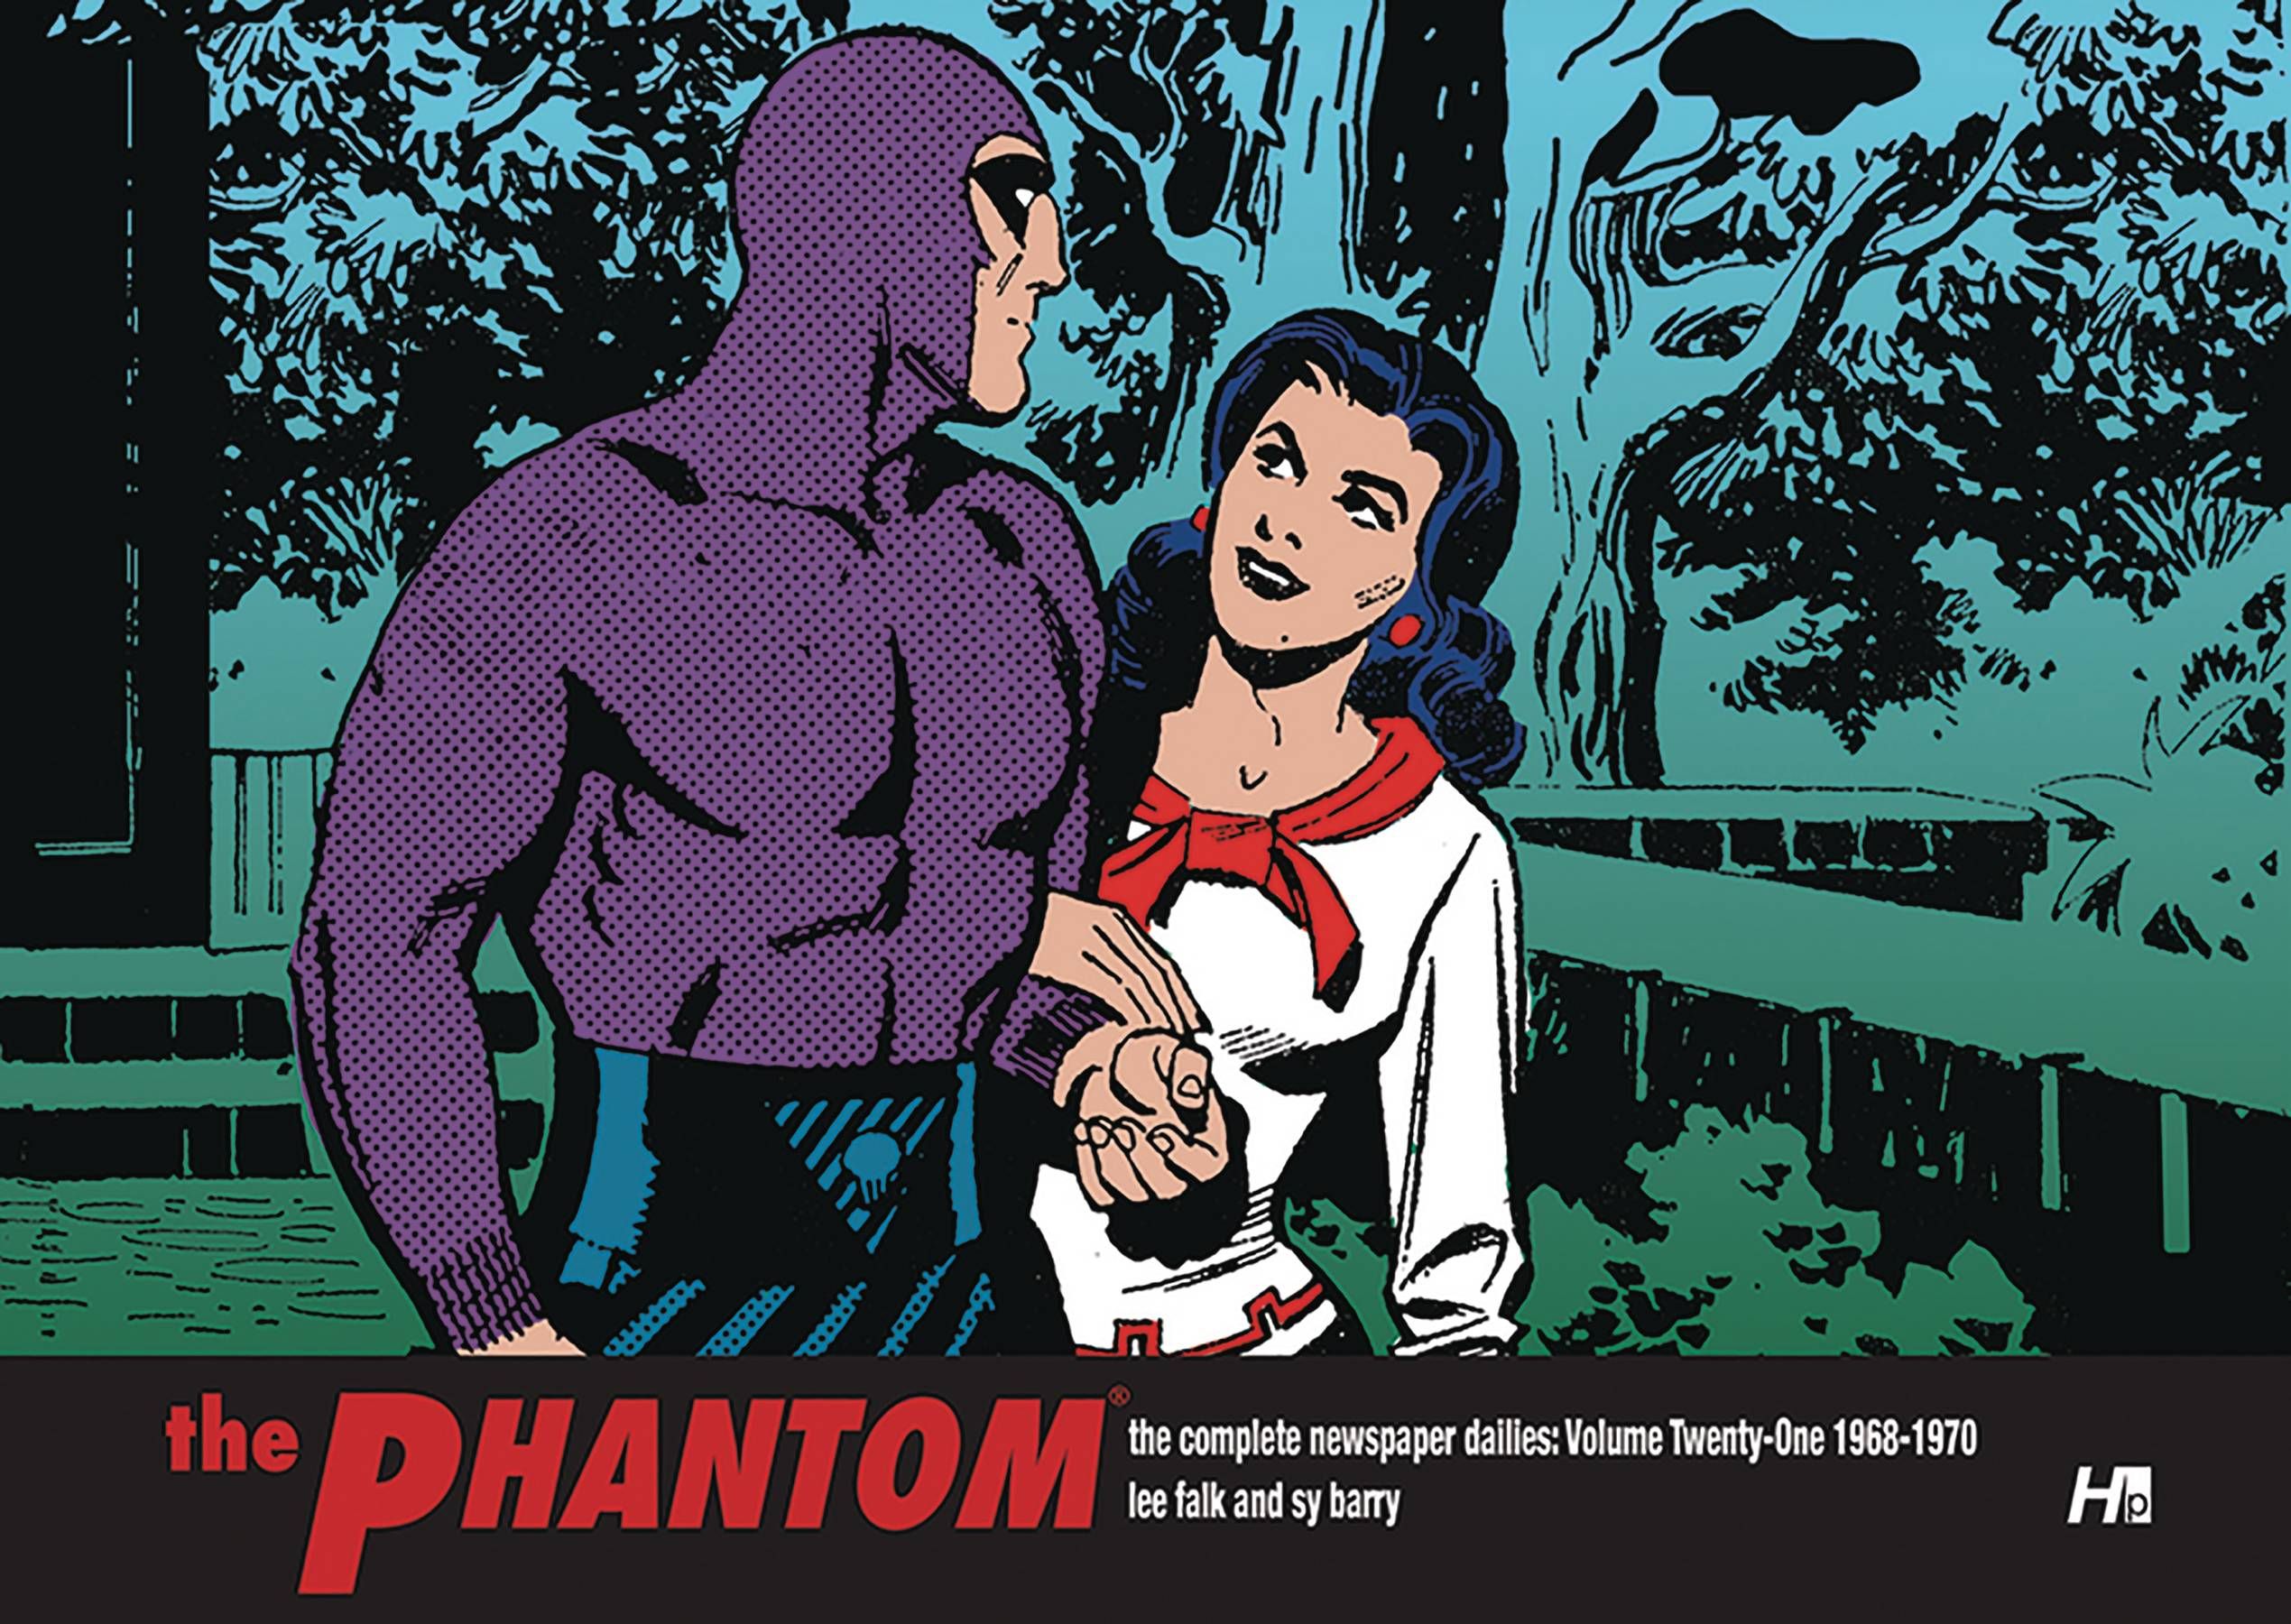 PHANTOM COMP DAILIES HC VOL 20 1966-1968